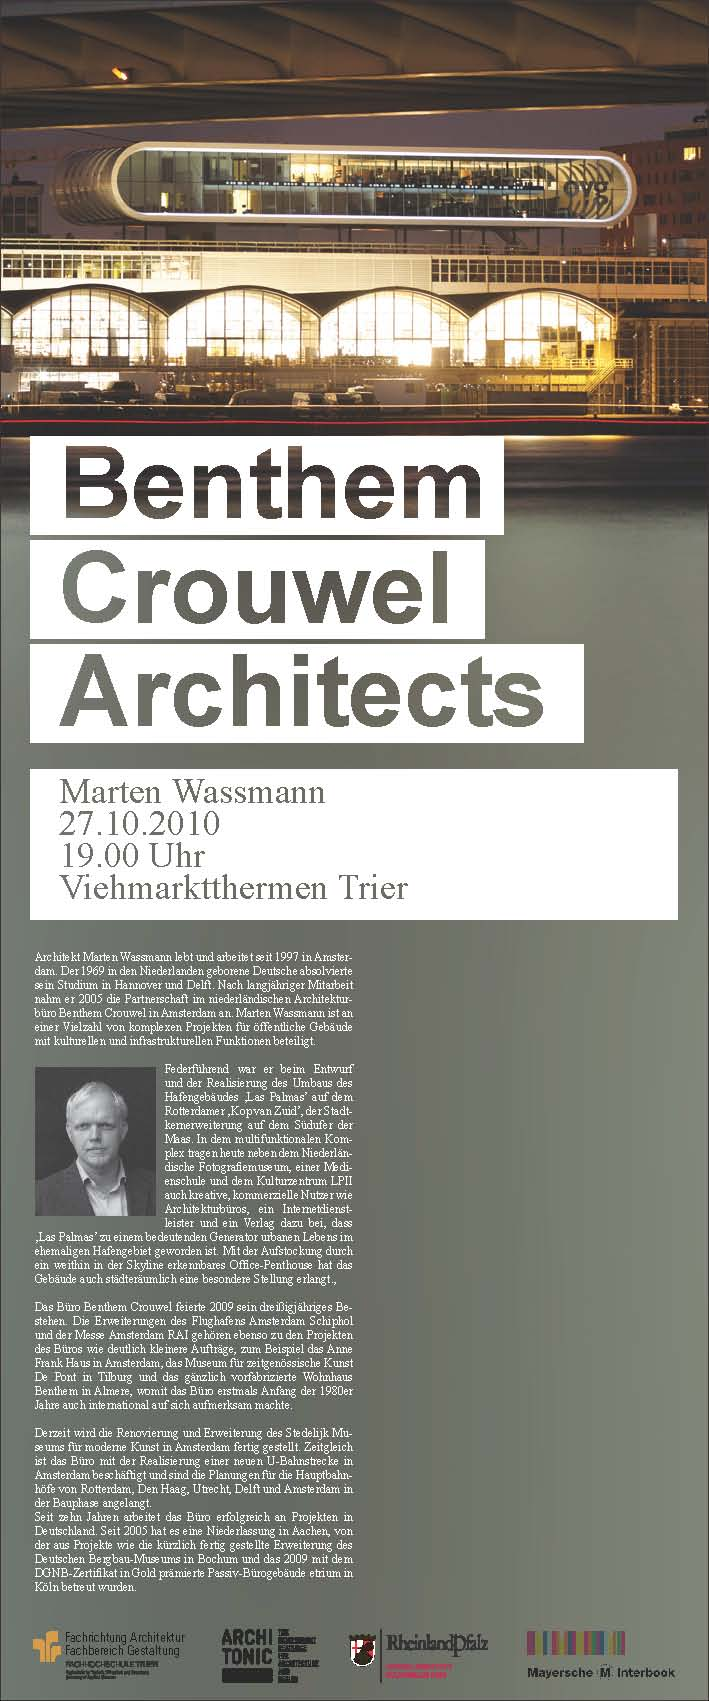 Benthem Crouwel Architects